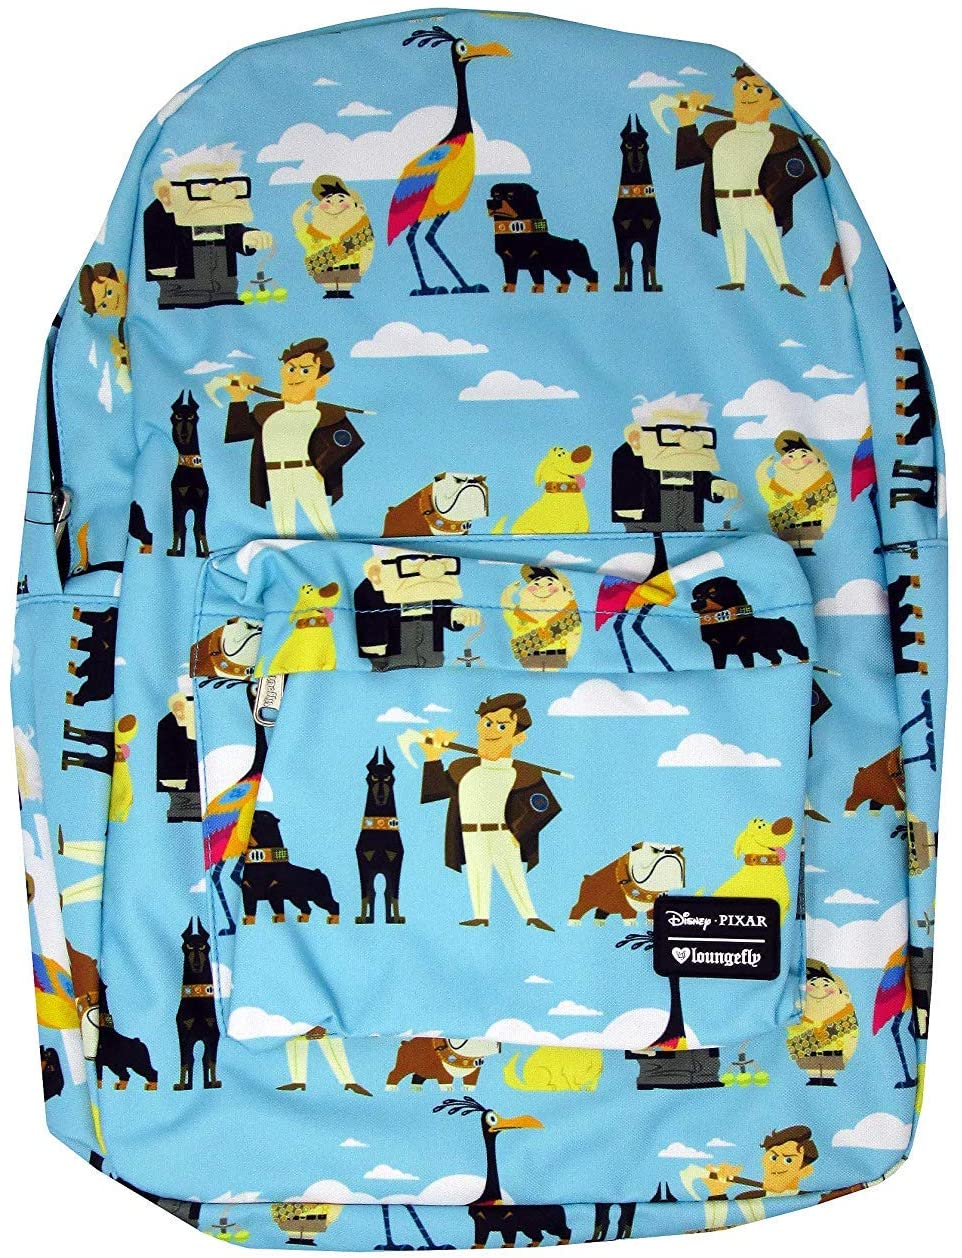 Loungefly Up - All Over Print Characters Backpack Fits Laptop